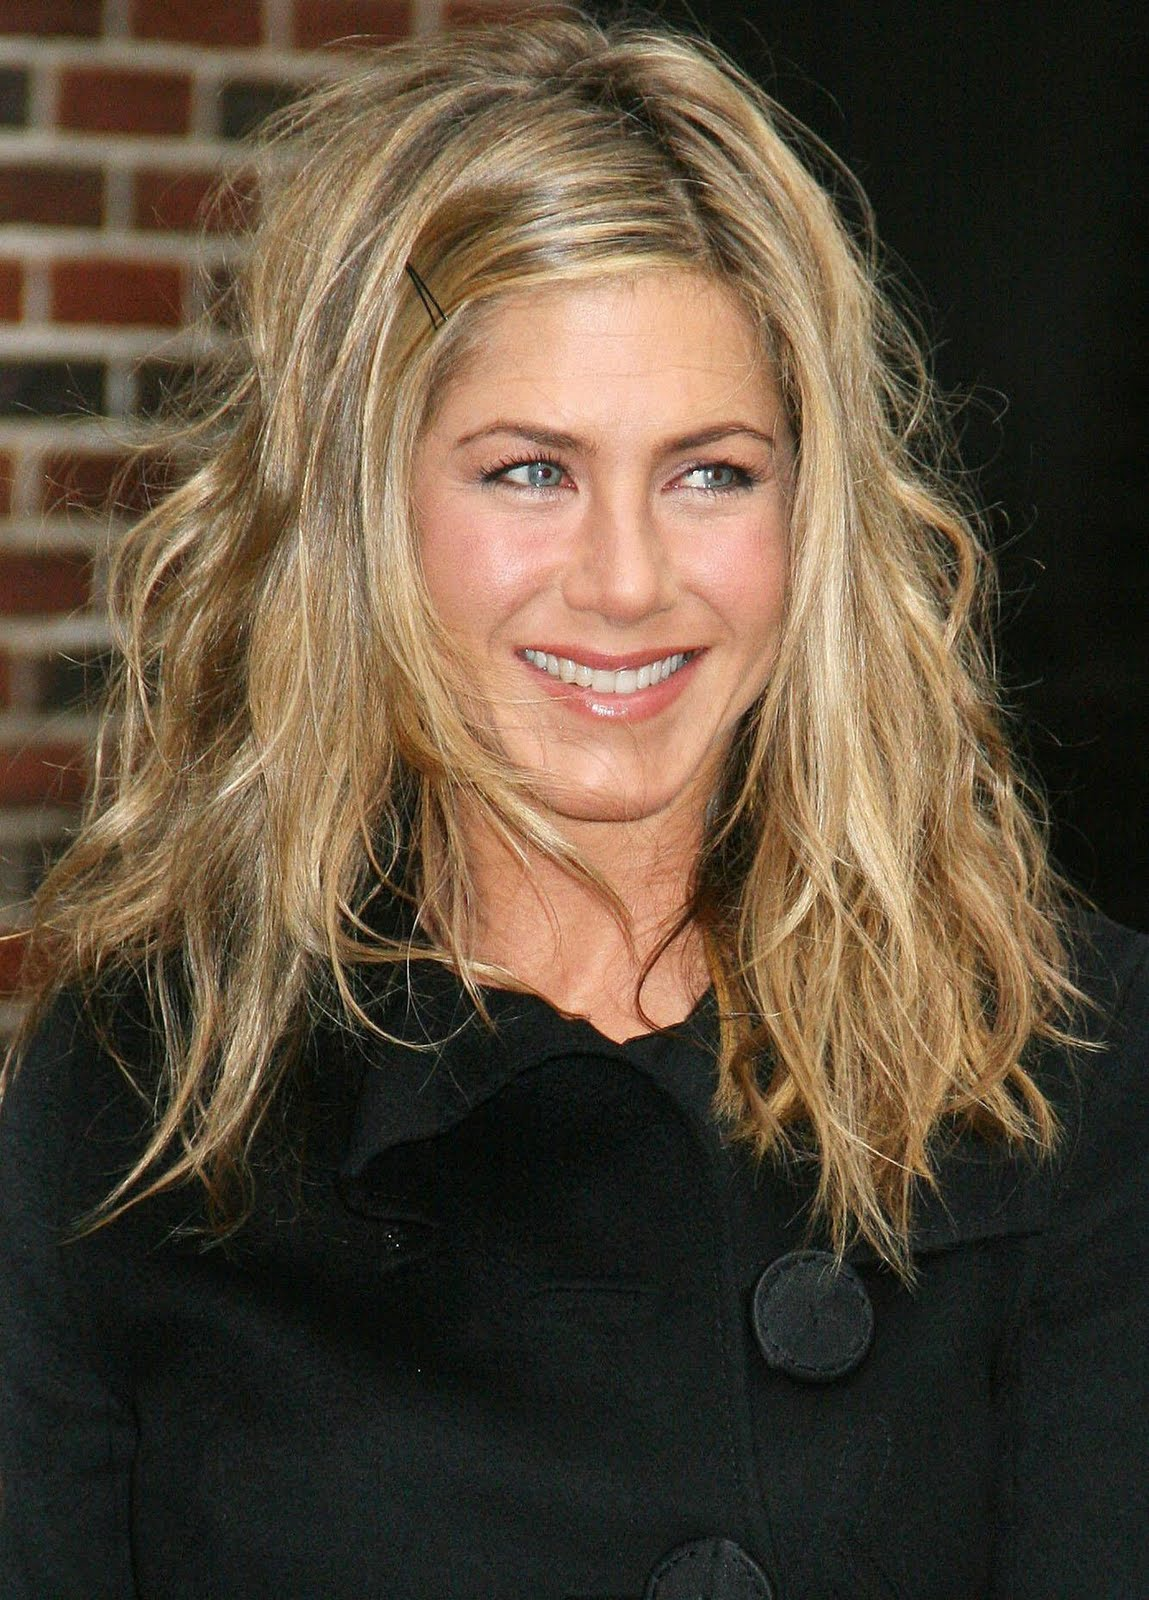 http://4.bp.blogspot.com/-WLcGPSBT4ZE/TlADayAw81I/AAAAAAAAAOQ/tLHRDw09rCE/s1600/Jennifer-Aniston-movie-pics-pictures-photos-images-adam-bio+%25281%2529.jpeg